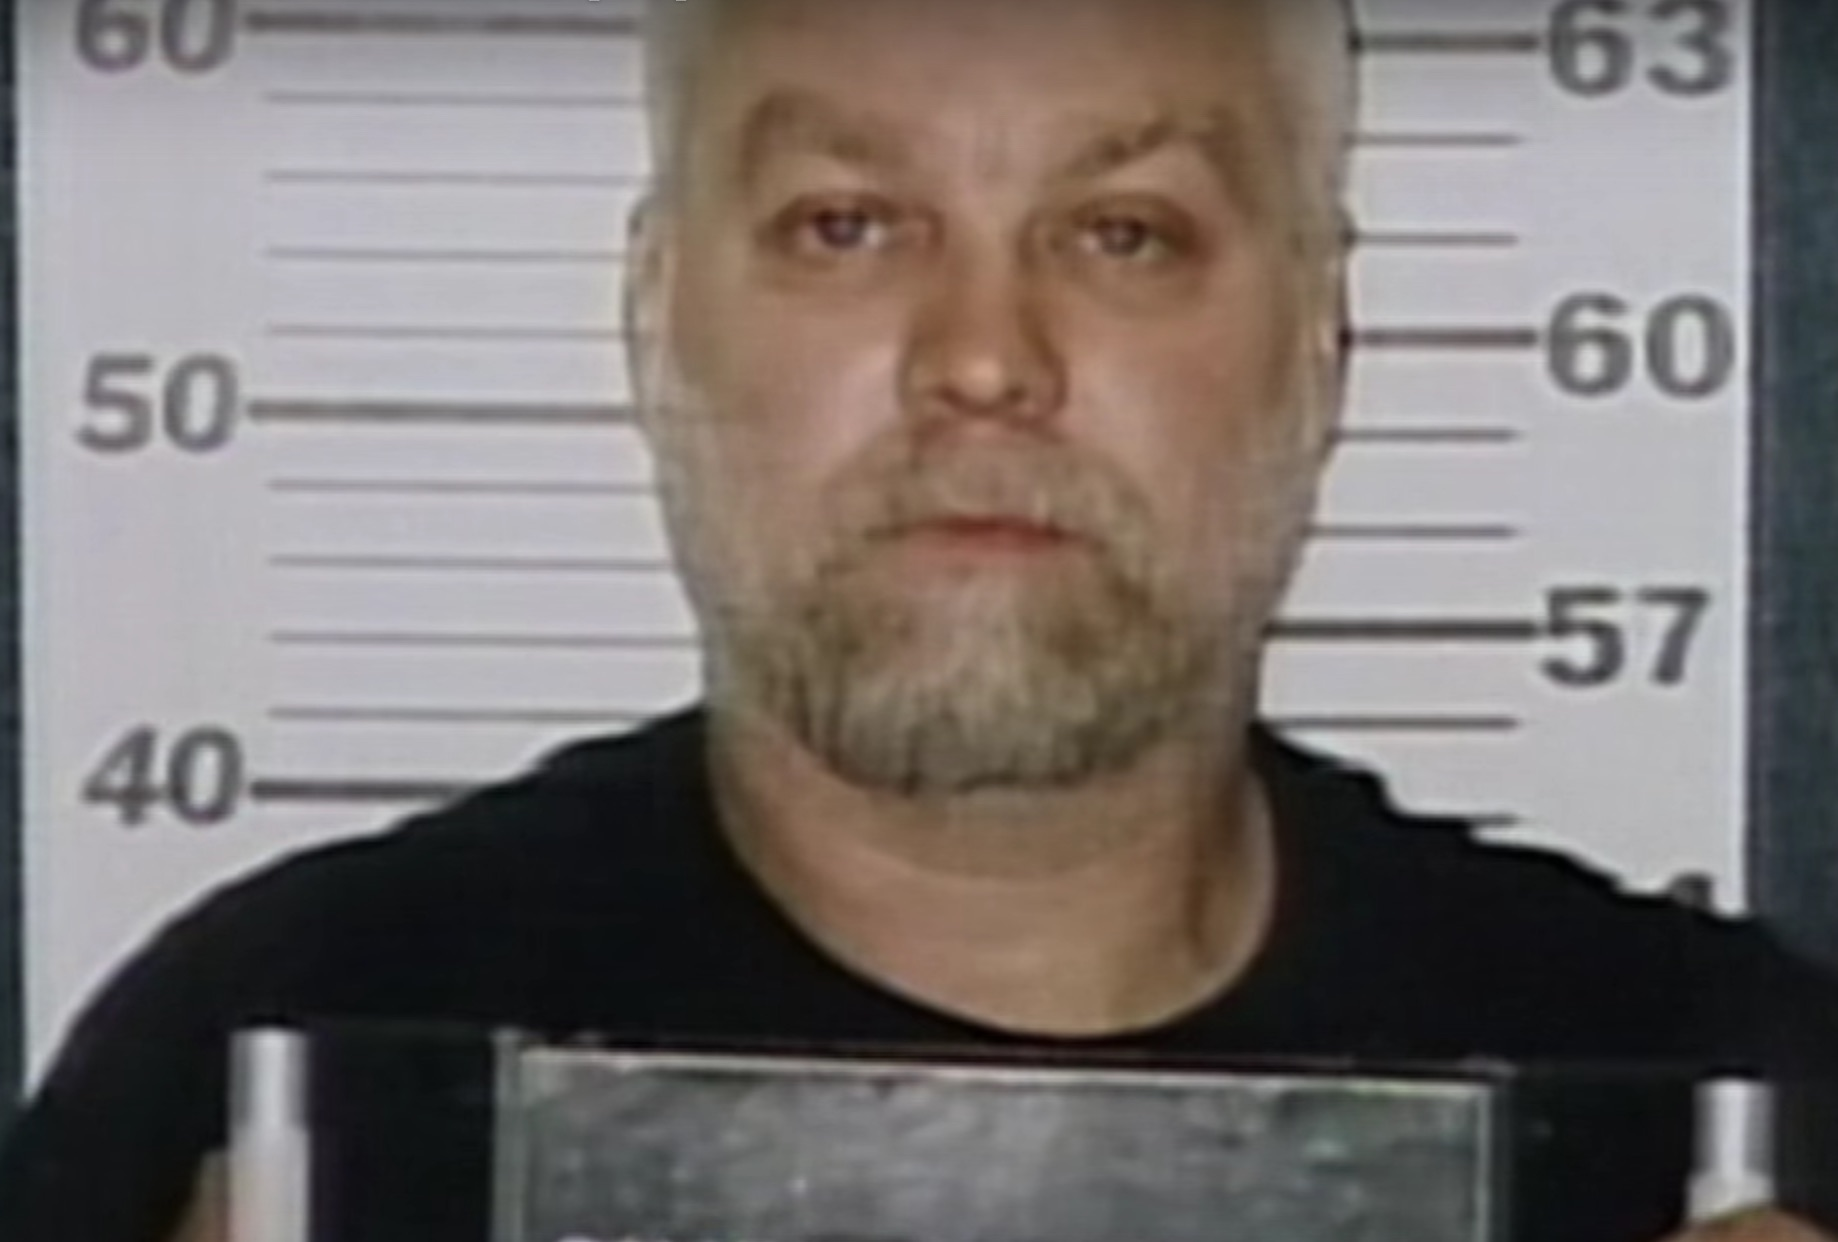 Here's what's going on with that 'Making a Murderer' petition